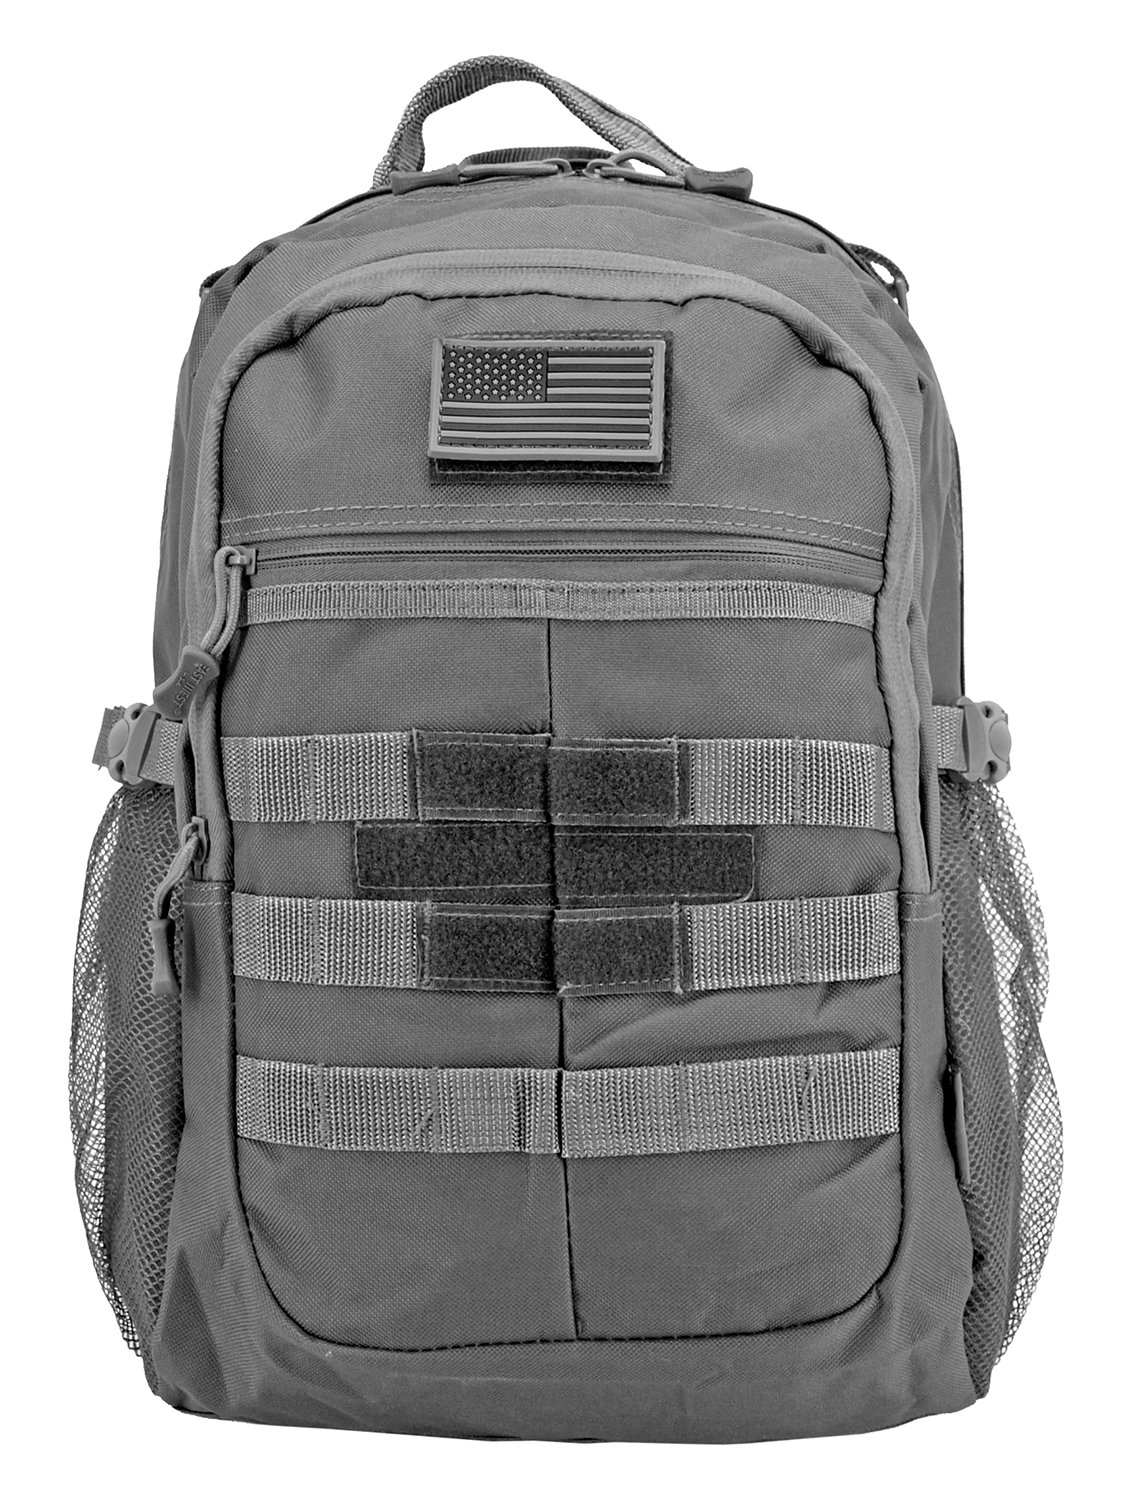 The Tactical Tradition Backpack - Grey